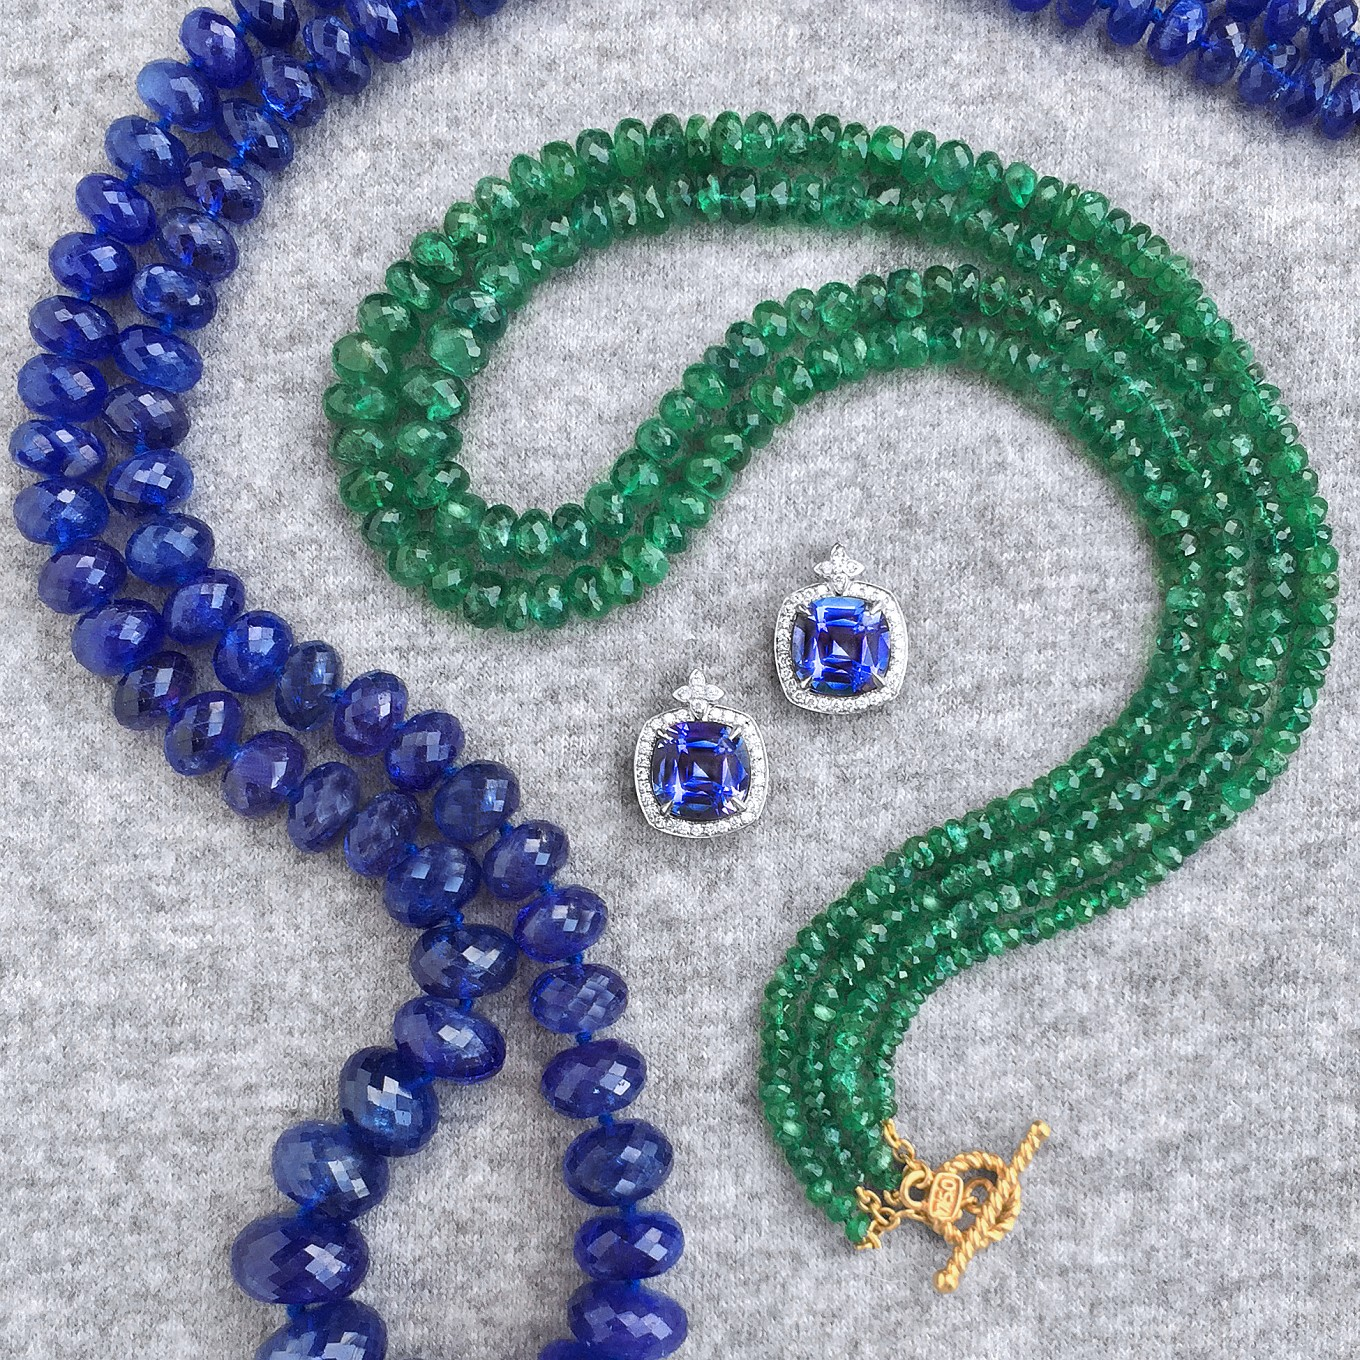 TANZANITE & EMERALD BEAD NECKLACES PRICE ON REQUESTCUSHION SHAPED TANZANITE & DIAMOND EARRINGS IN WHITE GOLD